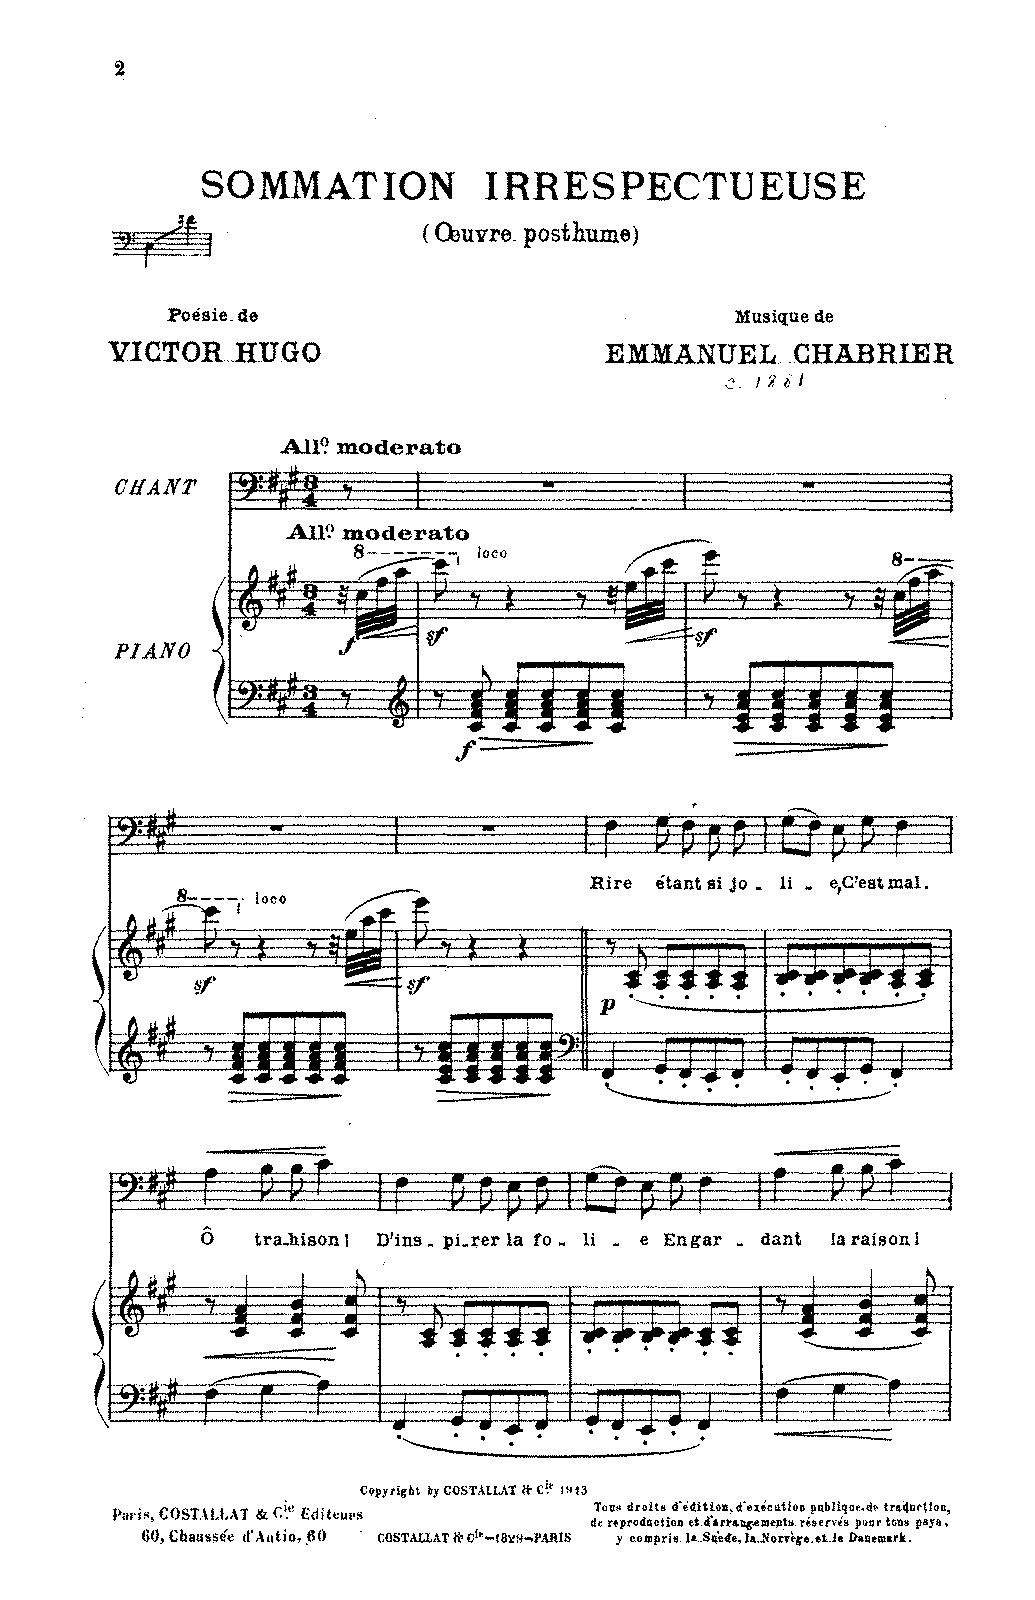 PMLP53176-Chabrier - Sommation Irrespectueuse (voice and piano).pdf